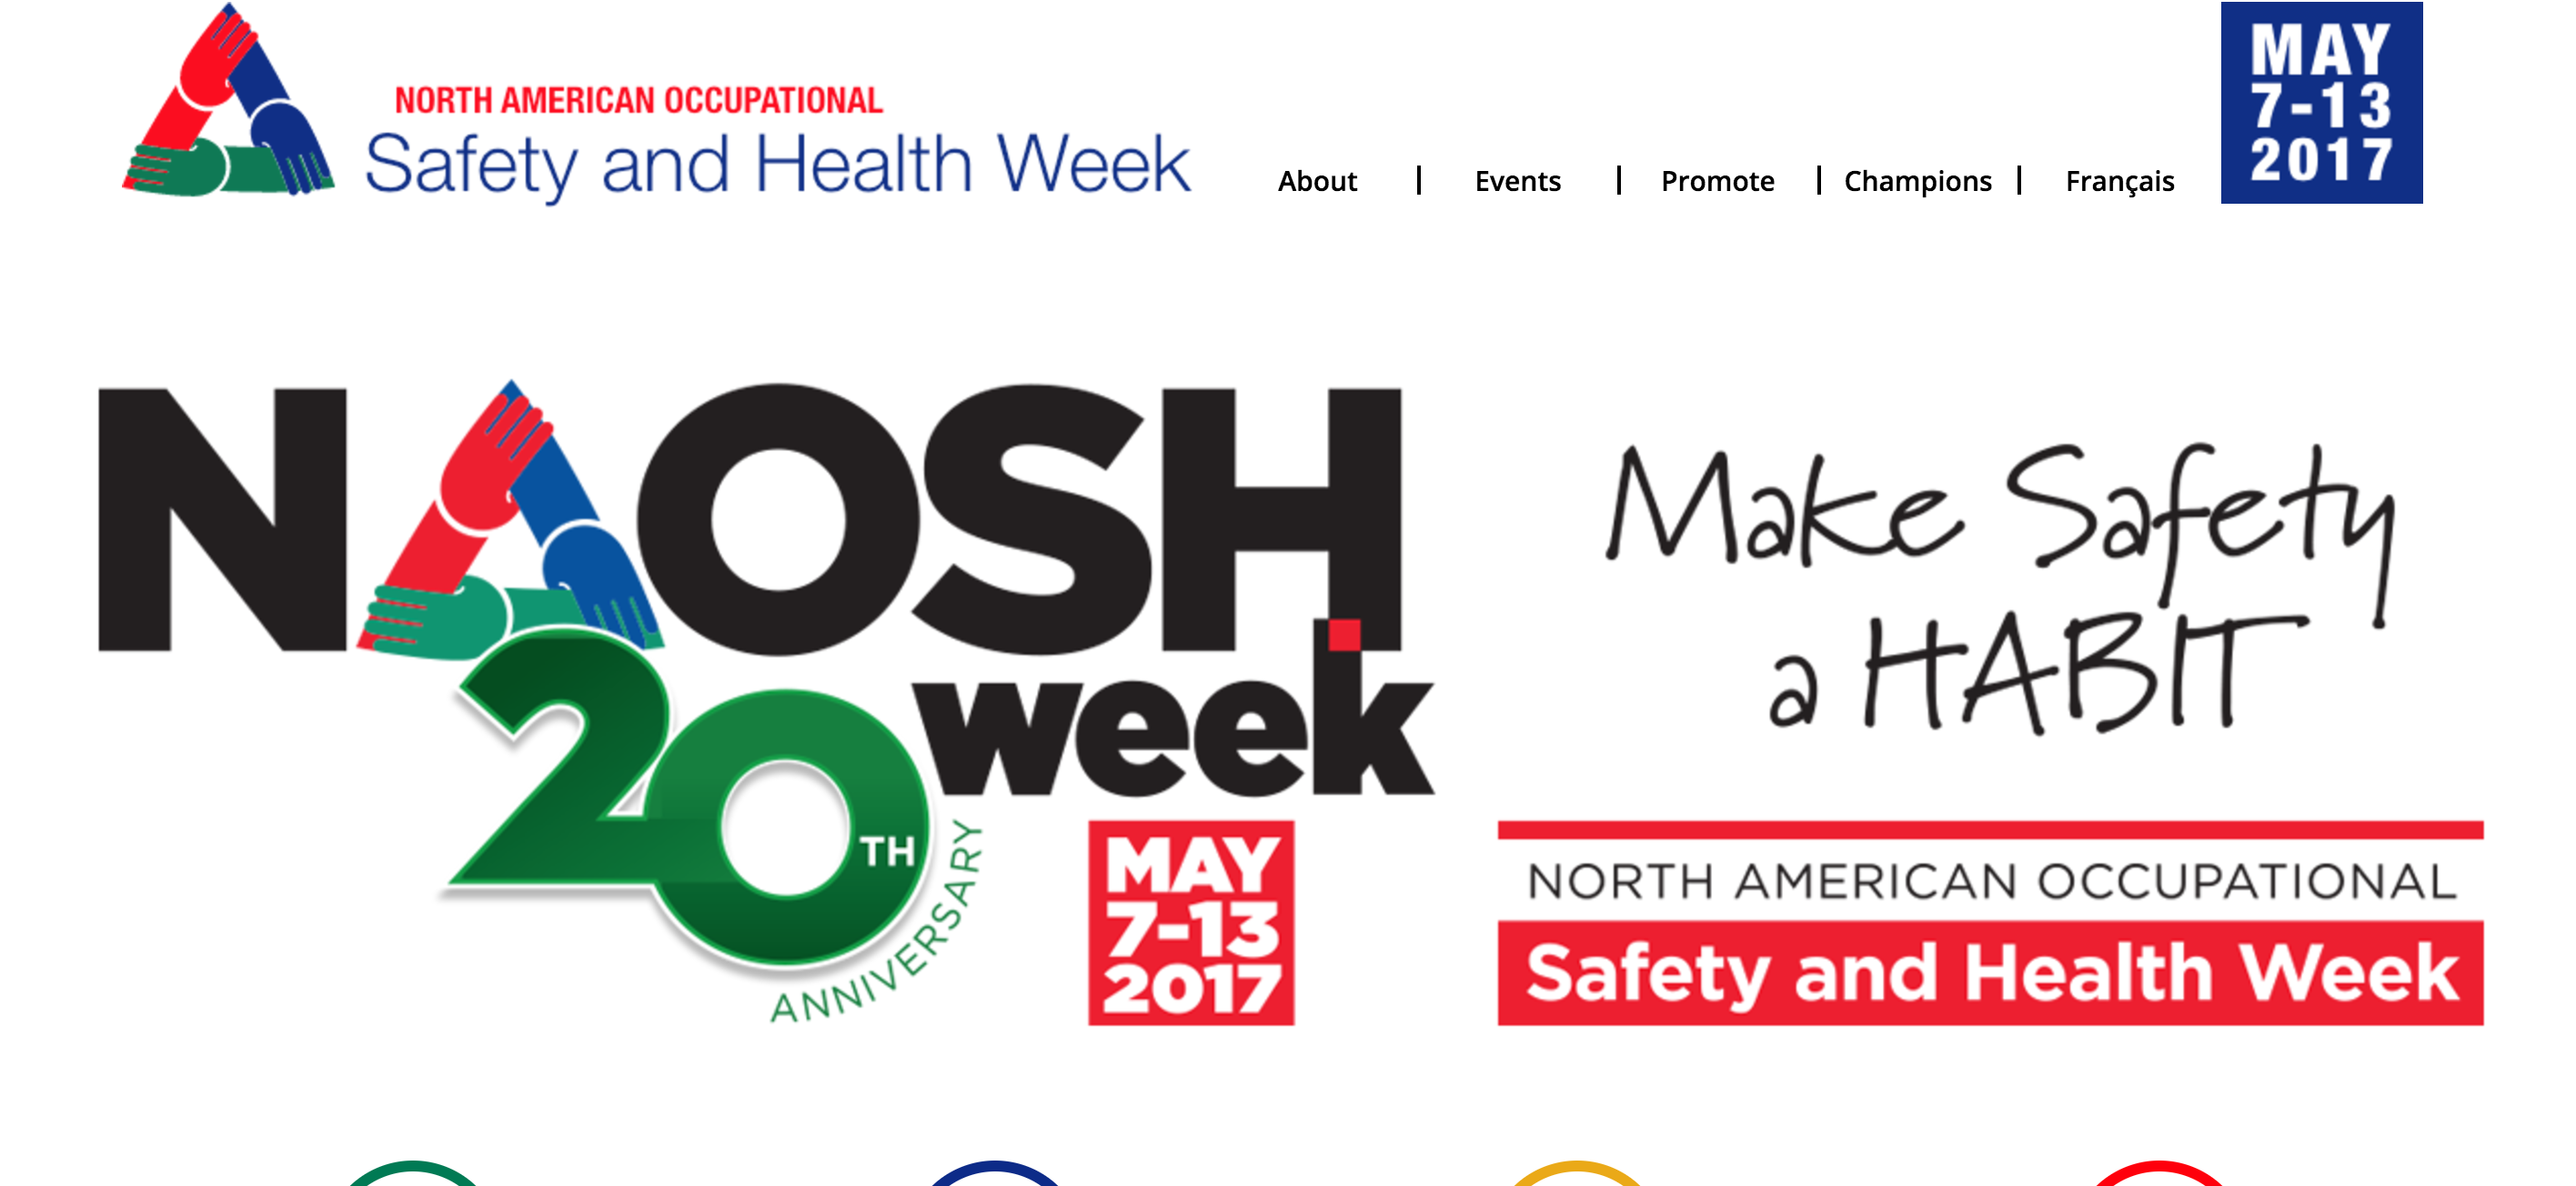 May 7 -13, 2017 North American Occupational Safety and Health (NOASH) Week: Make safety a habit